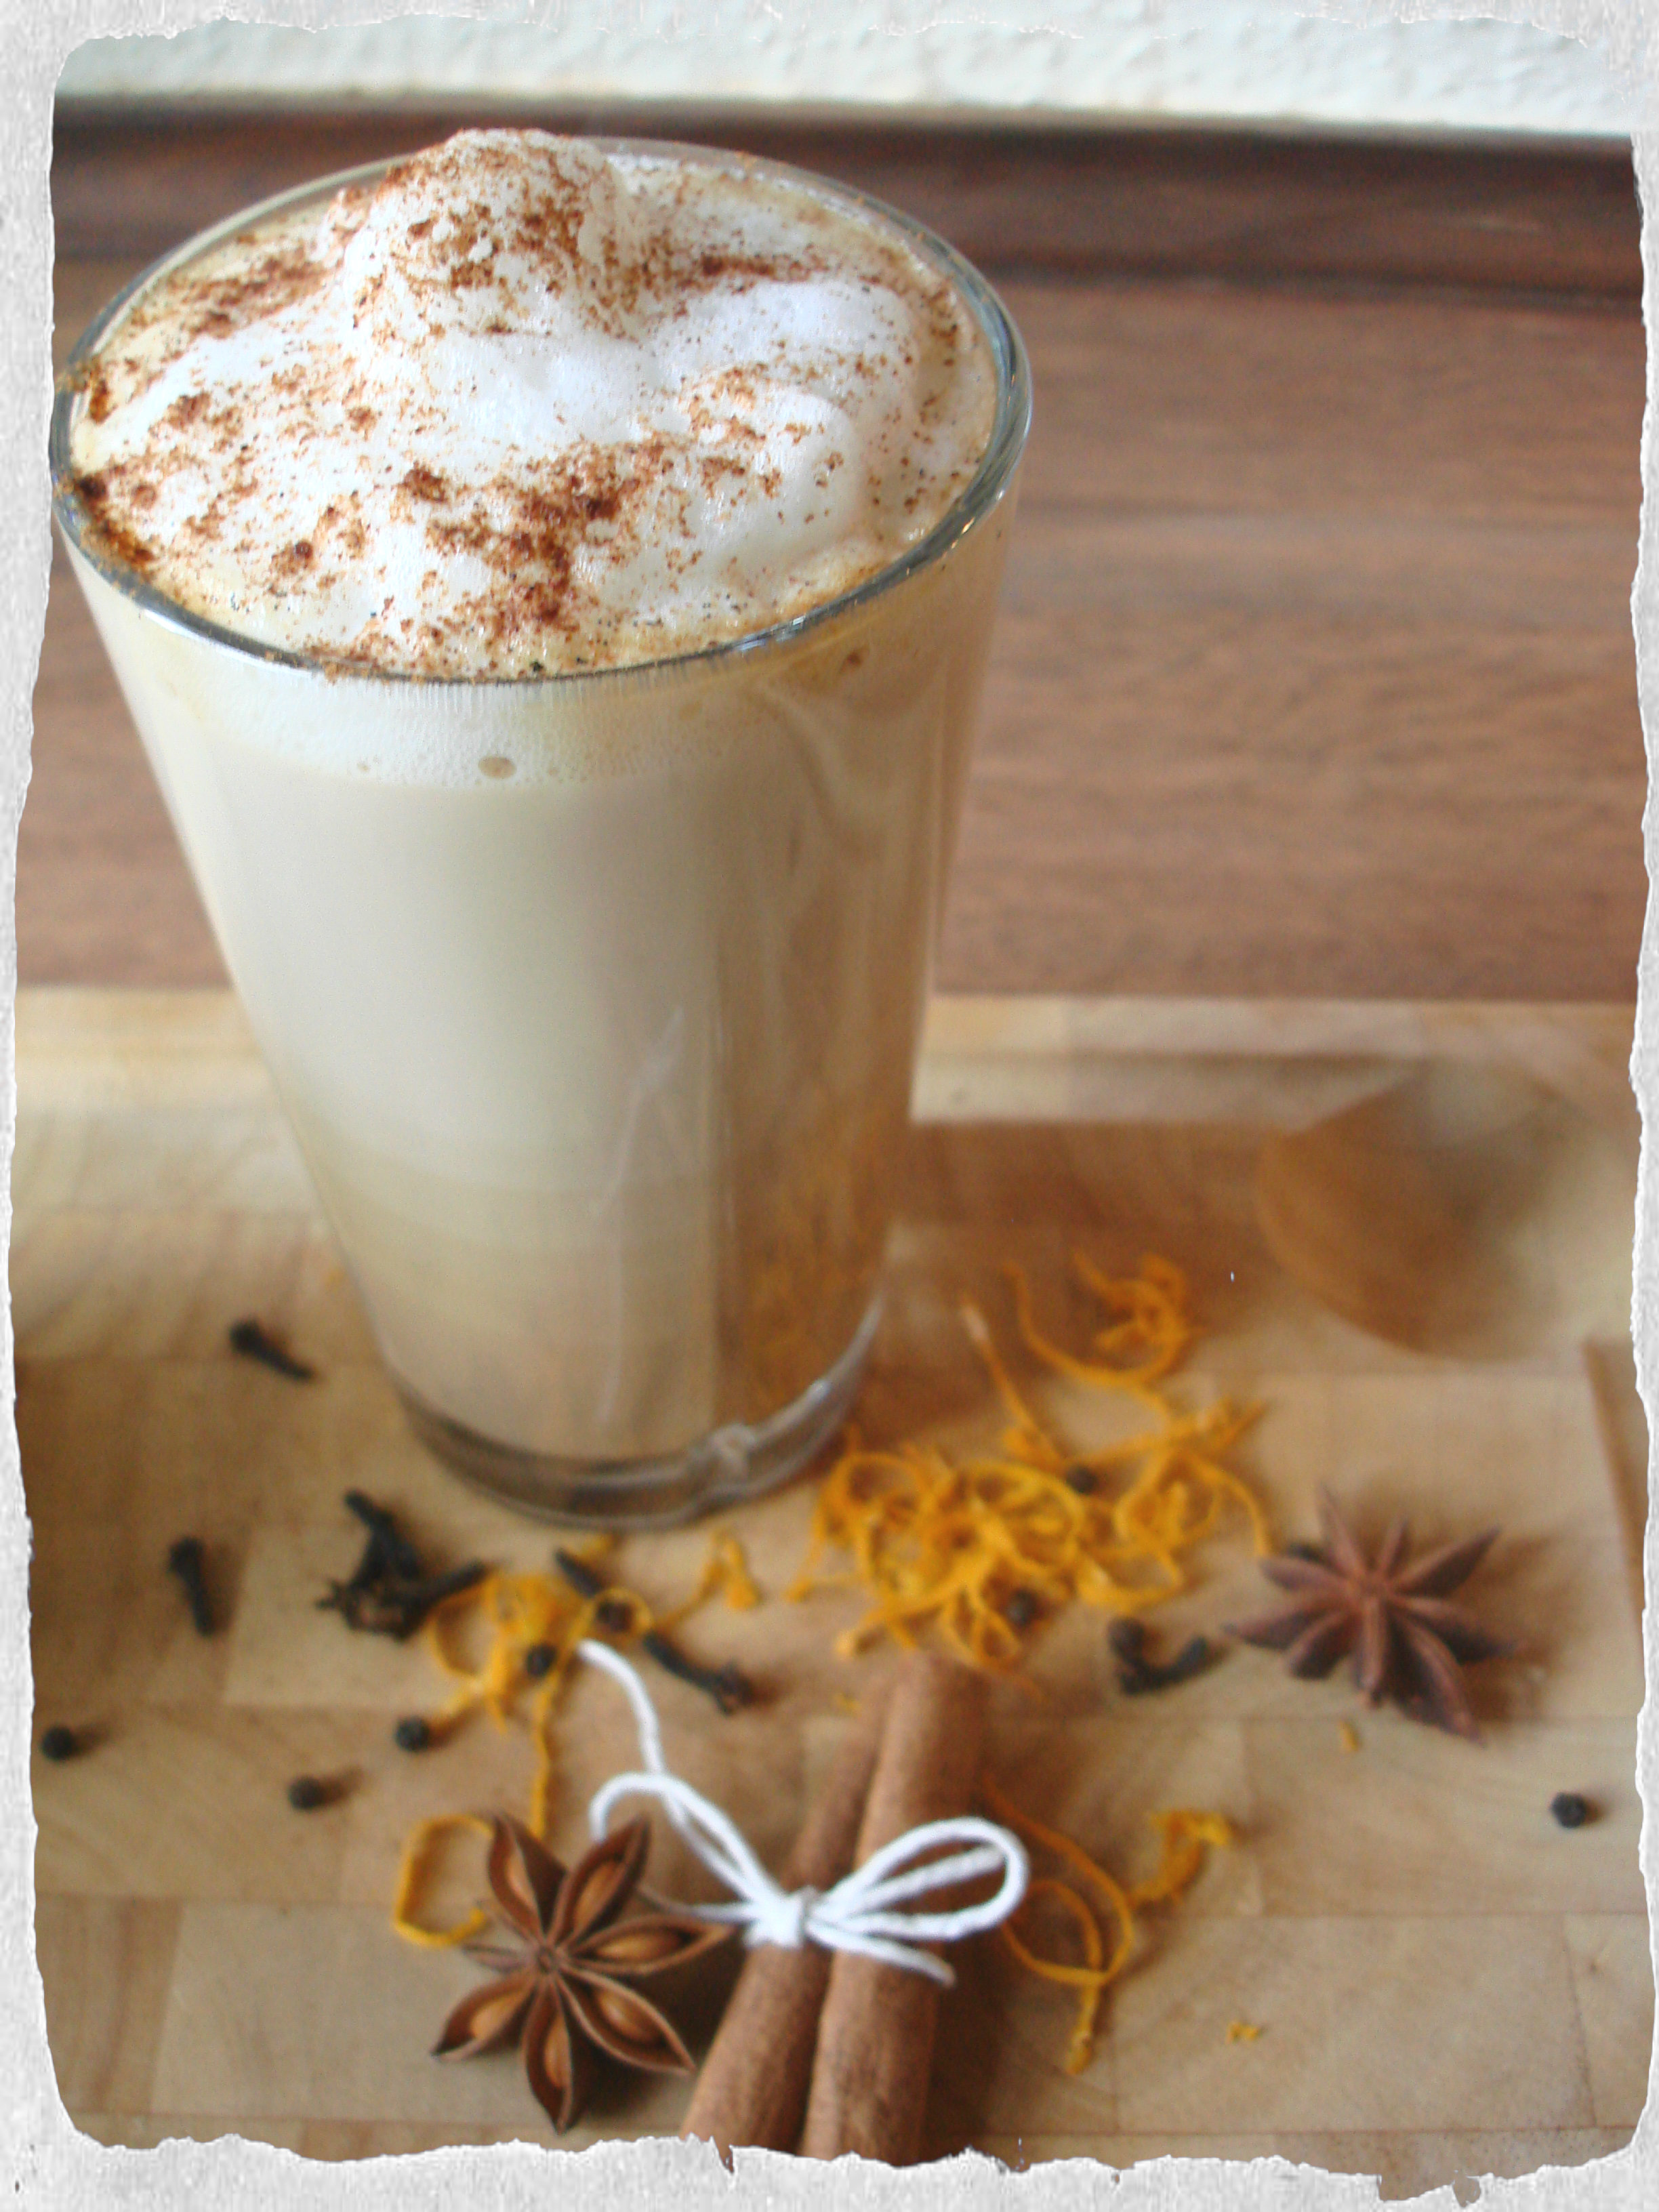 Homemade hot chai latte